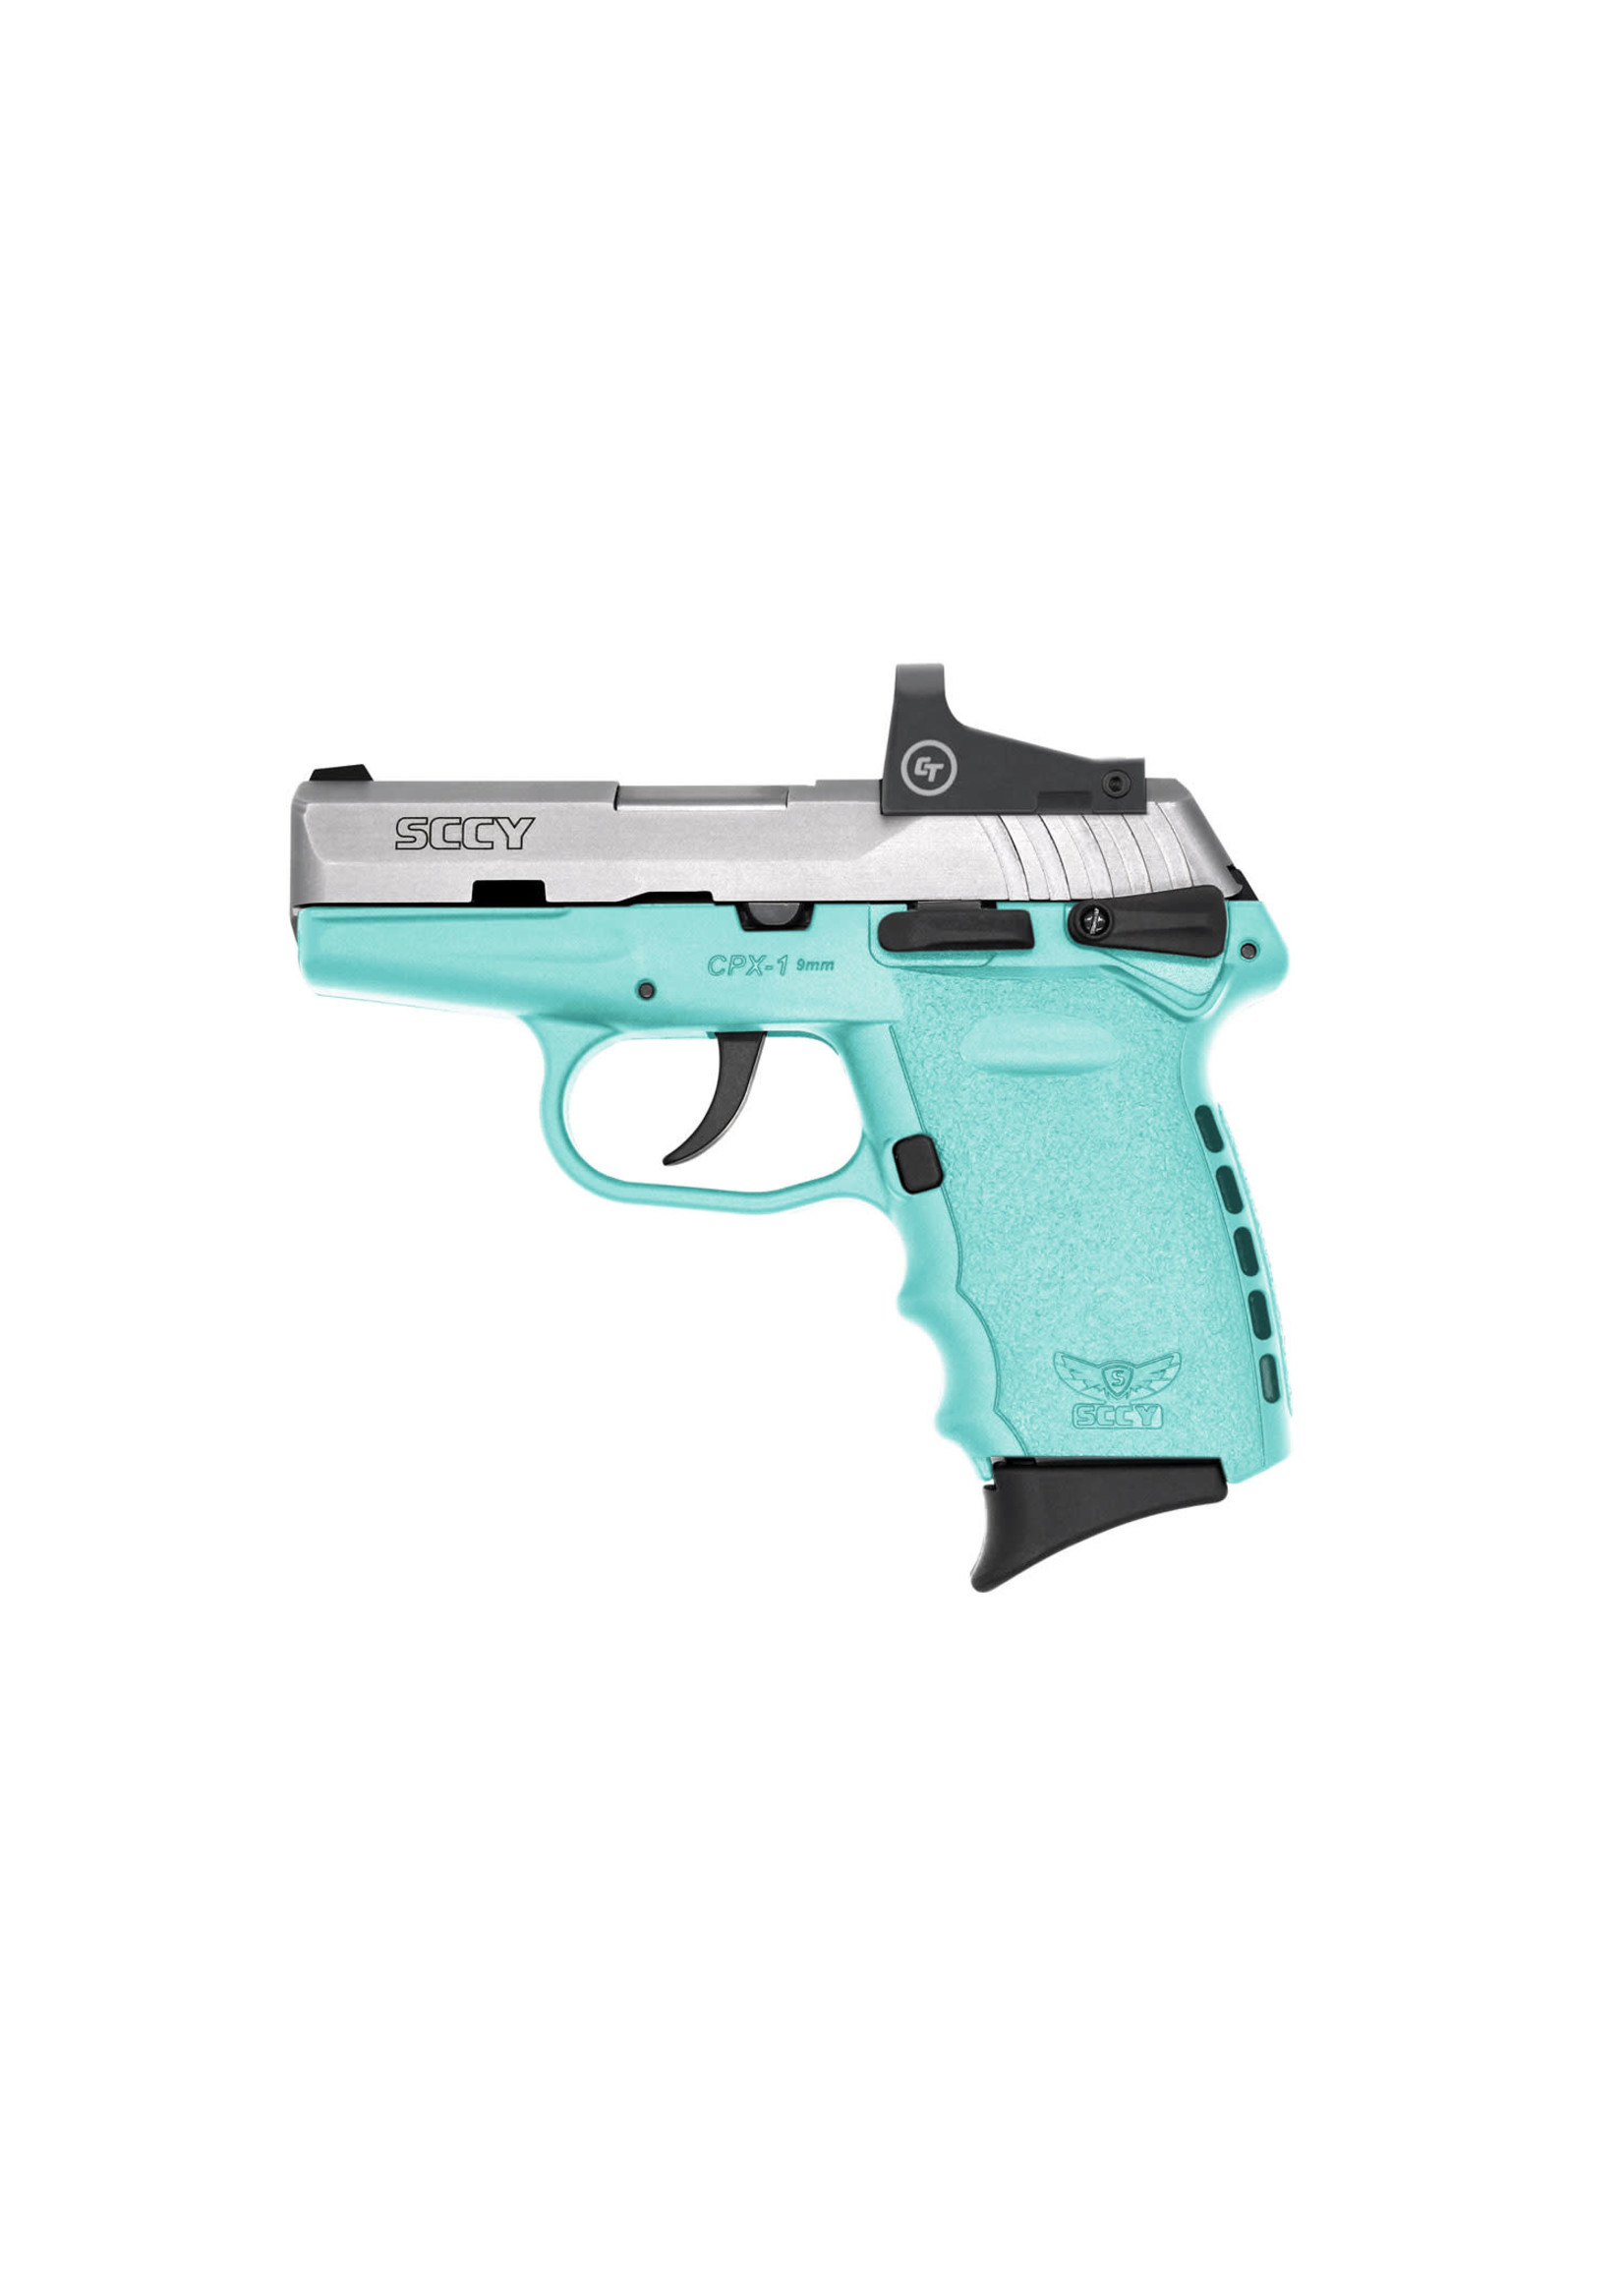 """Sccy Sccy Industries - CPX-1, 9mm, 3.1"""" Barrel, Red Dot Sight, Two-Tone - Stainless + Robin Egg Blue, Two 10-rd Mags"""